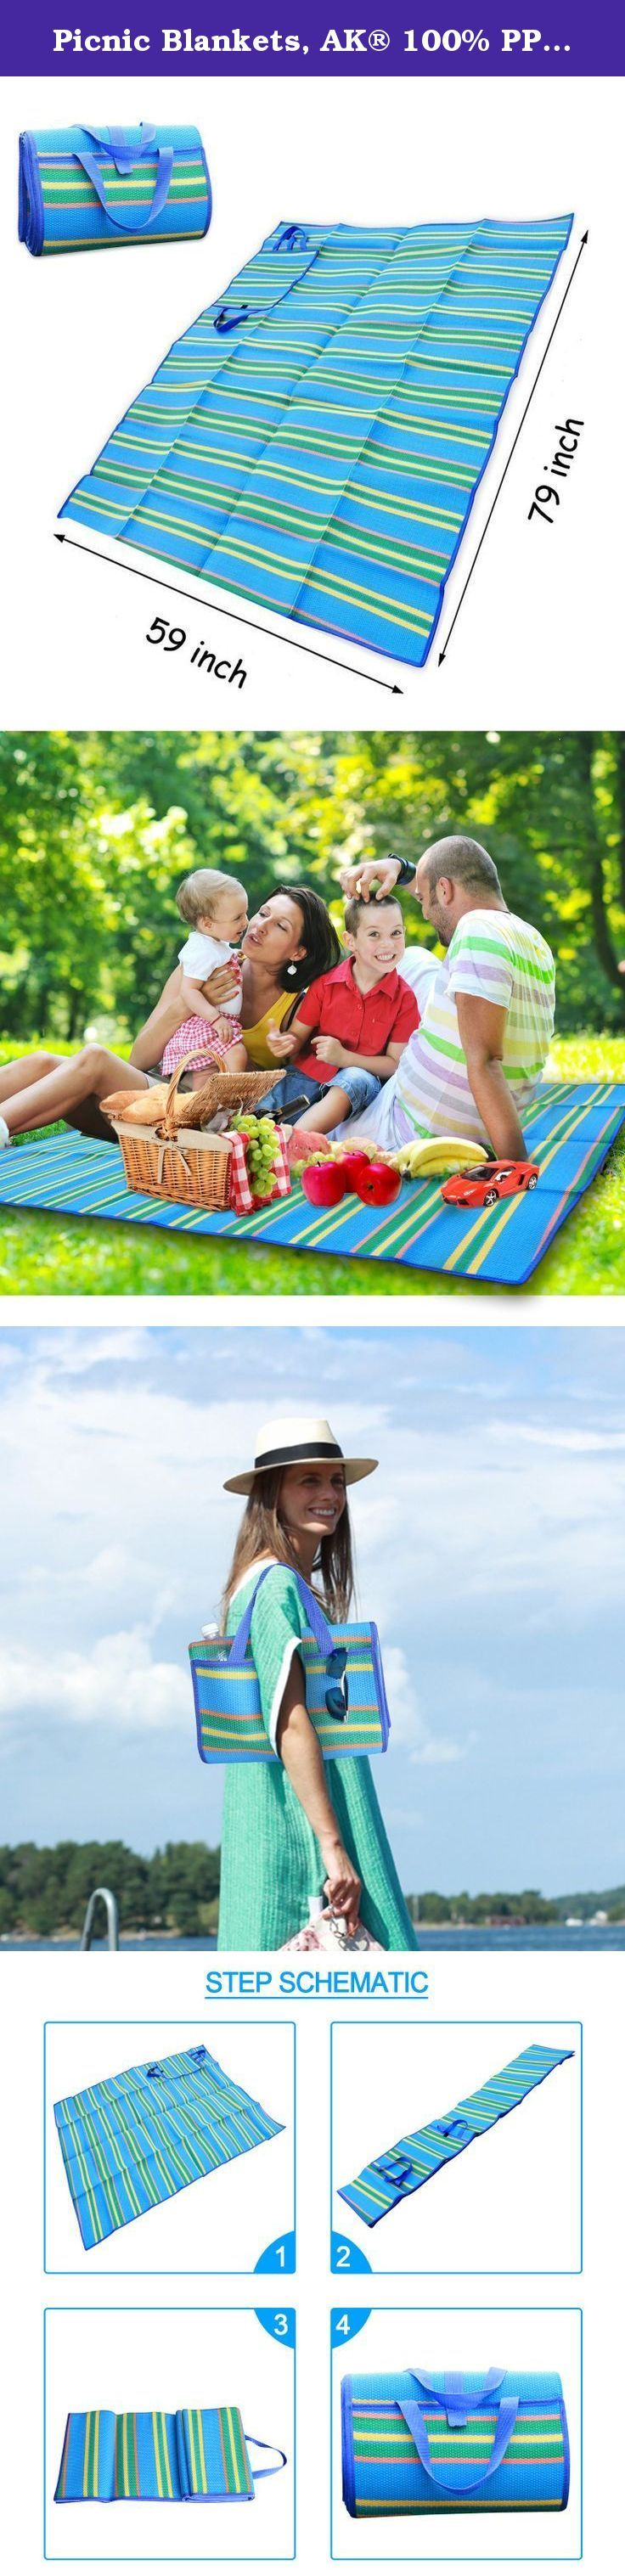 """Picnic Blankets, AK® 100% PP Woven Waterproof Sleeping Pad Handy Camping Mat with Strap,59"""" x 79"""" [Lightweight]. AK® Outdoor Camping Picnic Mats Are Perfect for Camping, Beaches, Picnic, Outdoor Concerts, or Just Enjoy a Relax Afternoon in the Park. Why Get This Picnic Blanket? Moisture-proof pad is very important when outdoor. The function of AK® Outdoor Camping Picnic Mats is great. Firstly, it is difficult to find a flat place when camping or hiking. You will feel uncomfortable when..."""